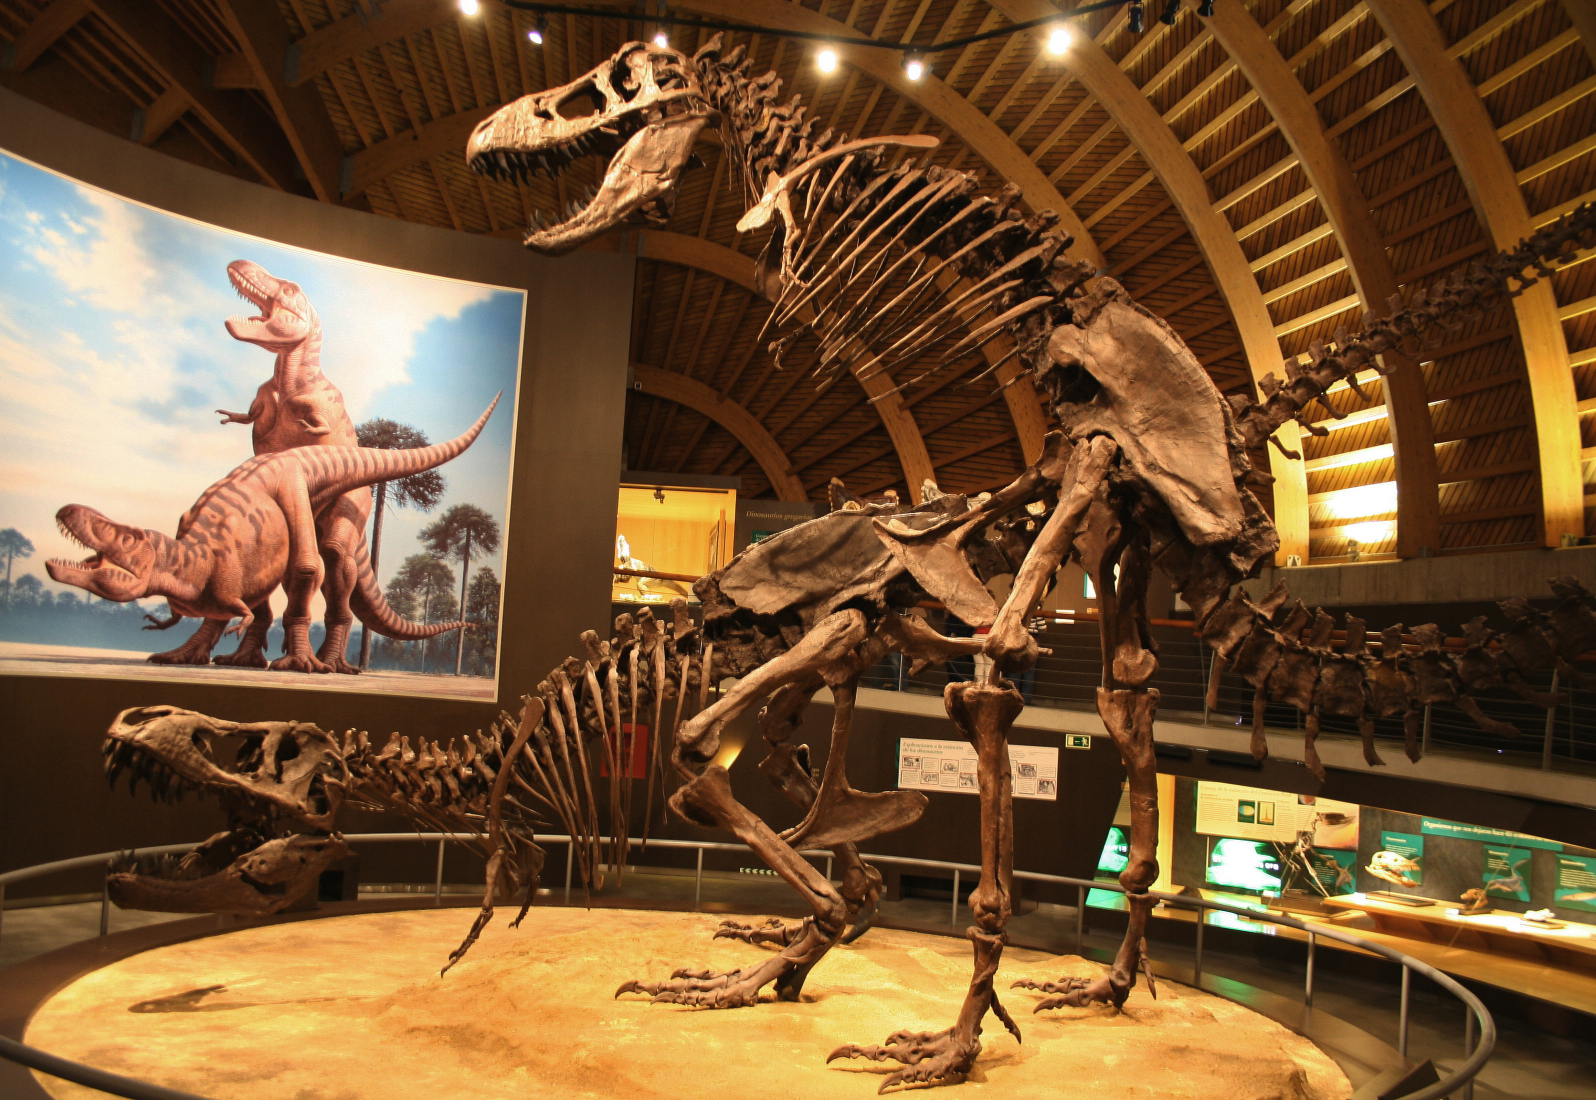 TIL there is a museum in Spain that shows two T. Rex ...